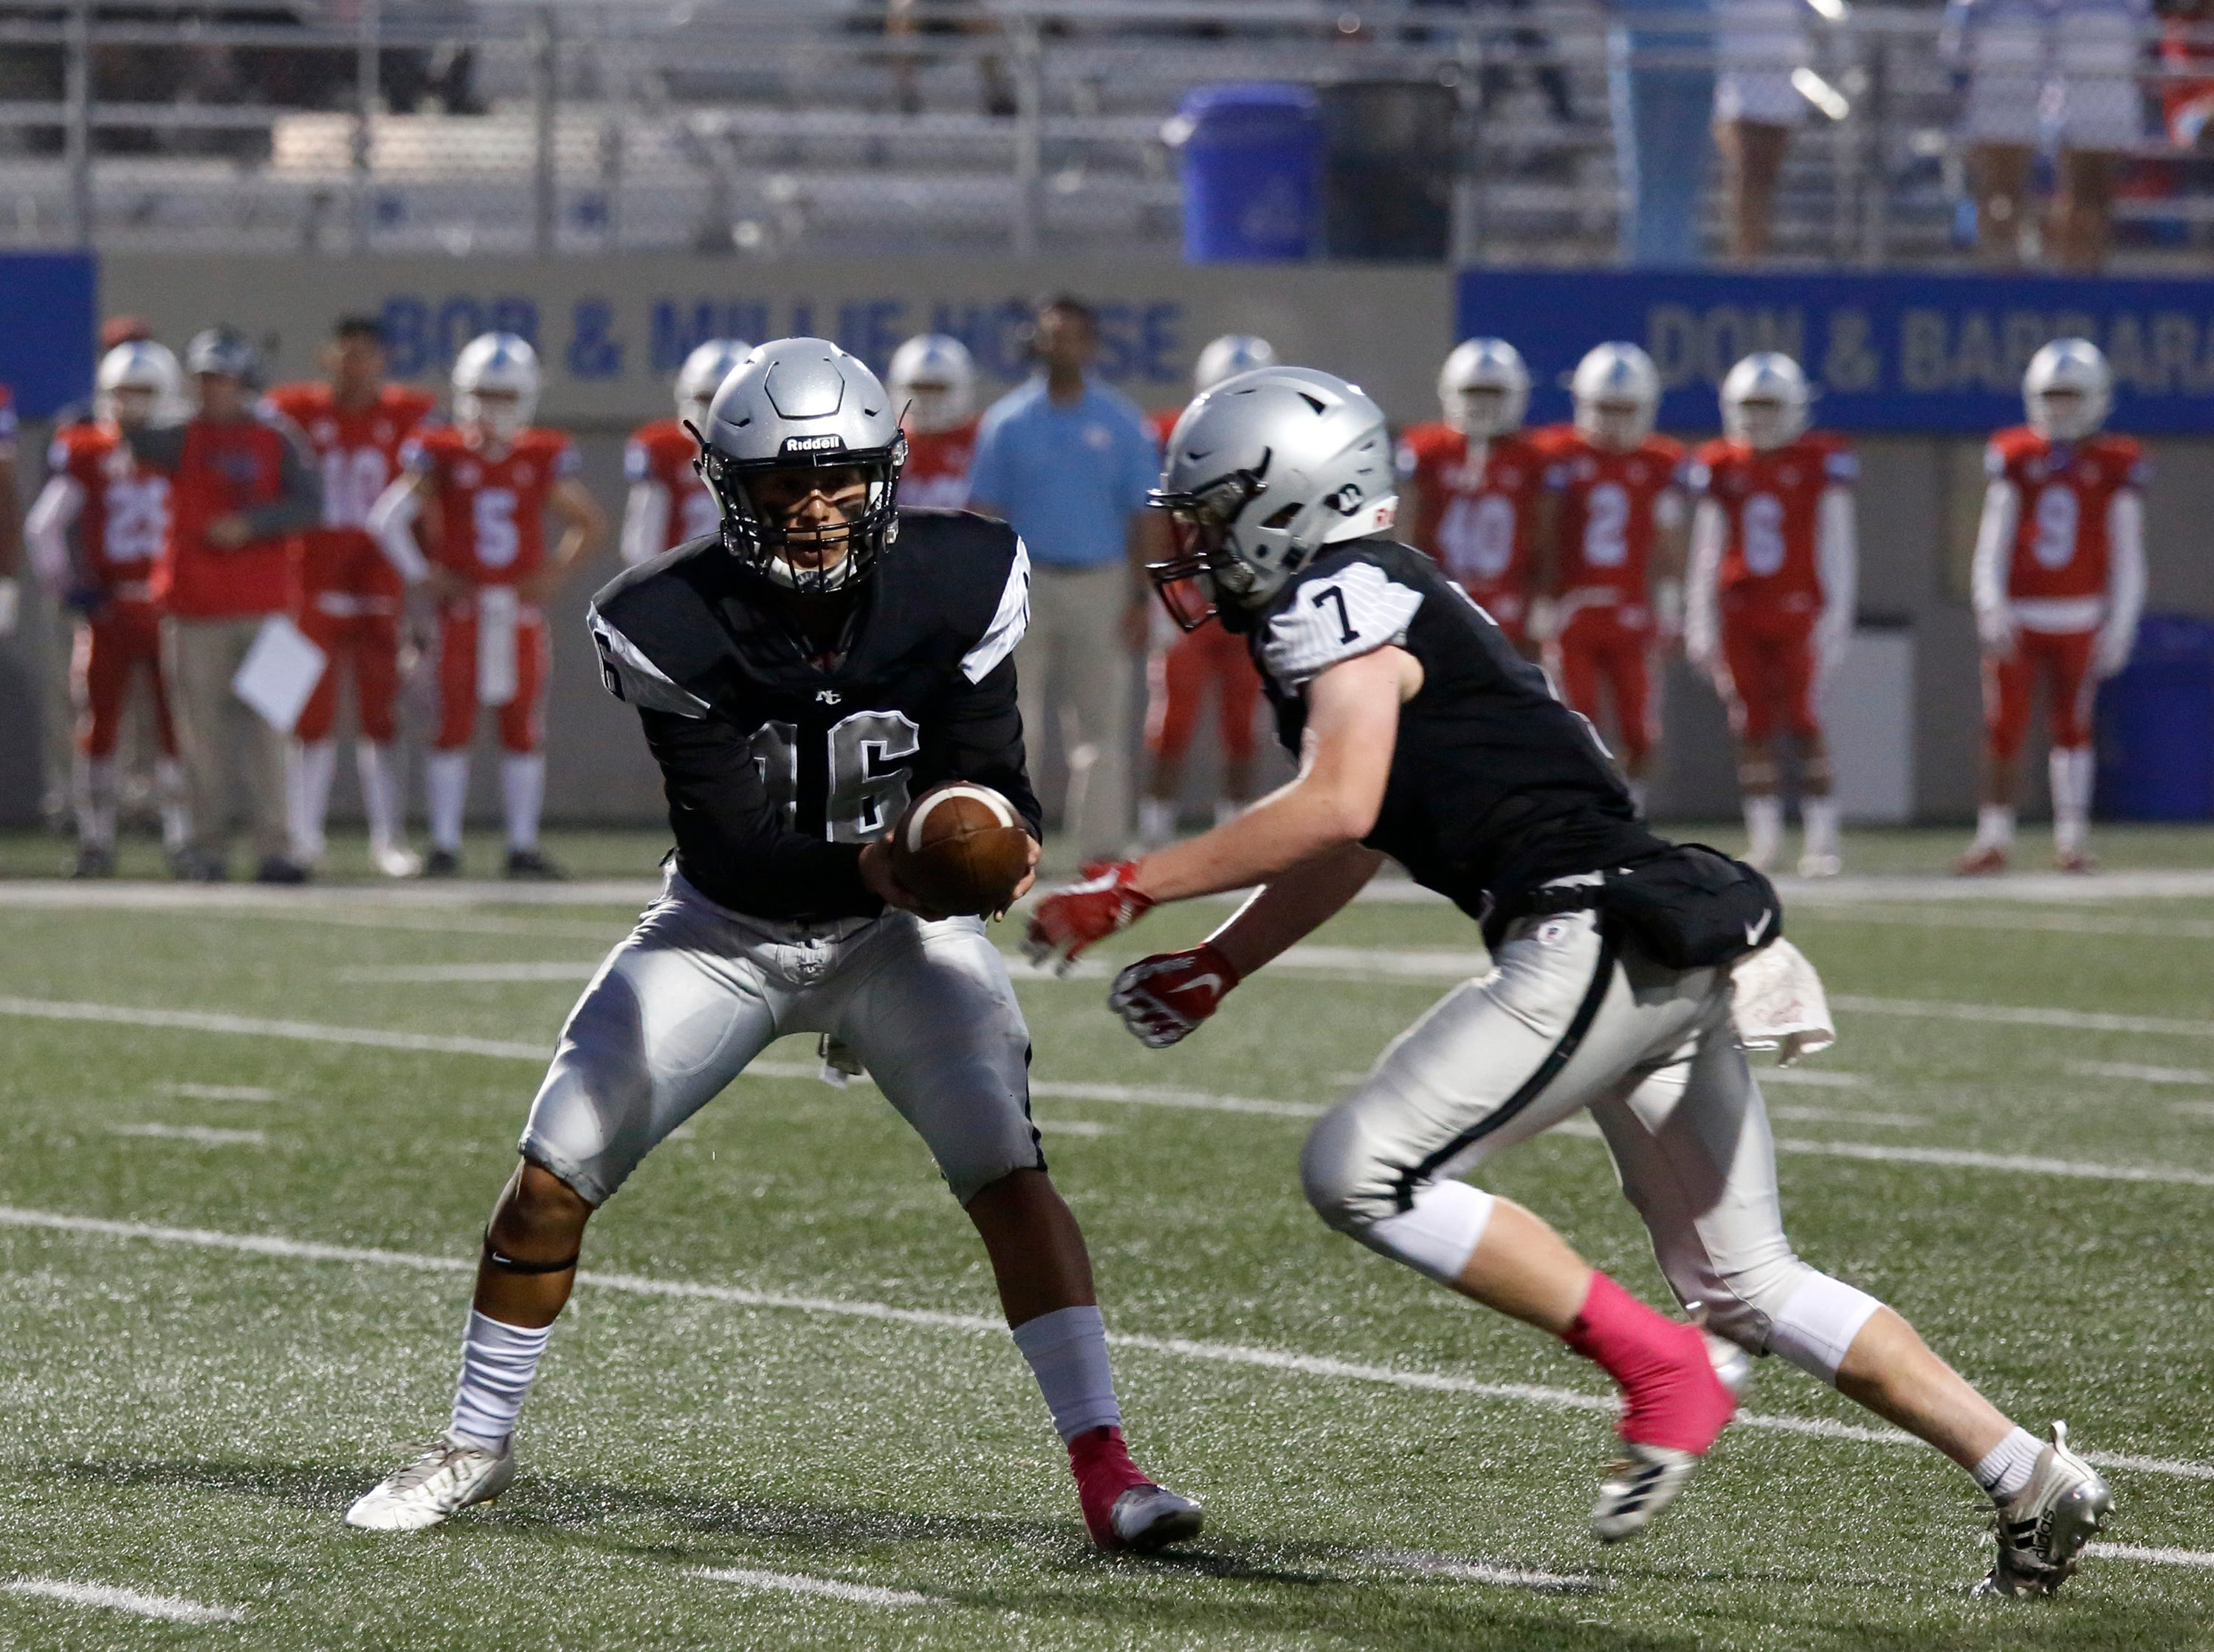 North Monterey County quarterback Brandon Ducusin hands the ball to Riley Anderson against North Salinas during football at Rabobank Stadium in Salinas on Thursday August 23, 2018.